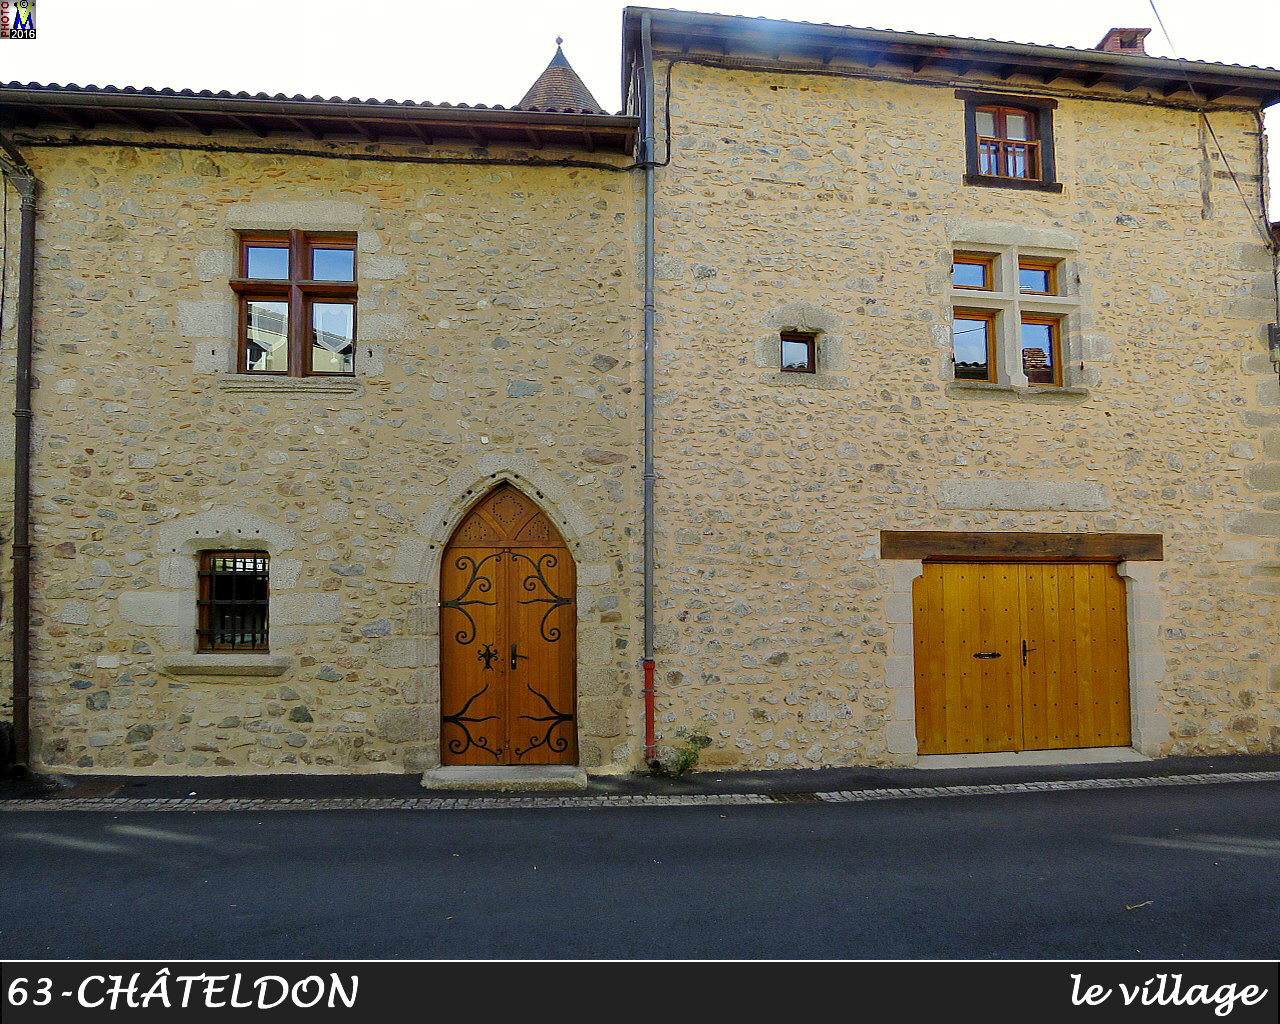 63CHATELDON_village_138.jpg